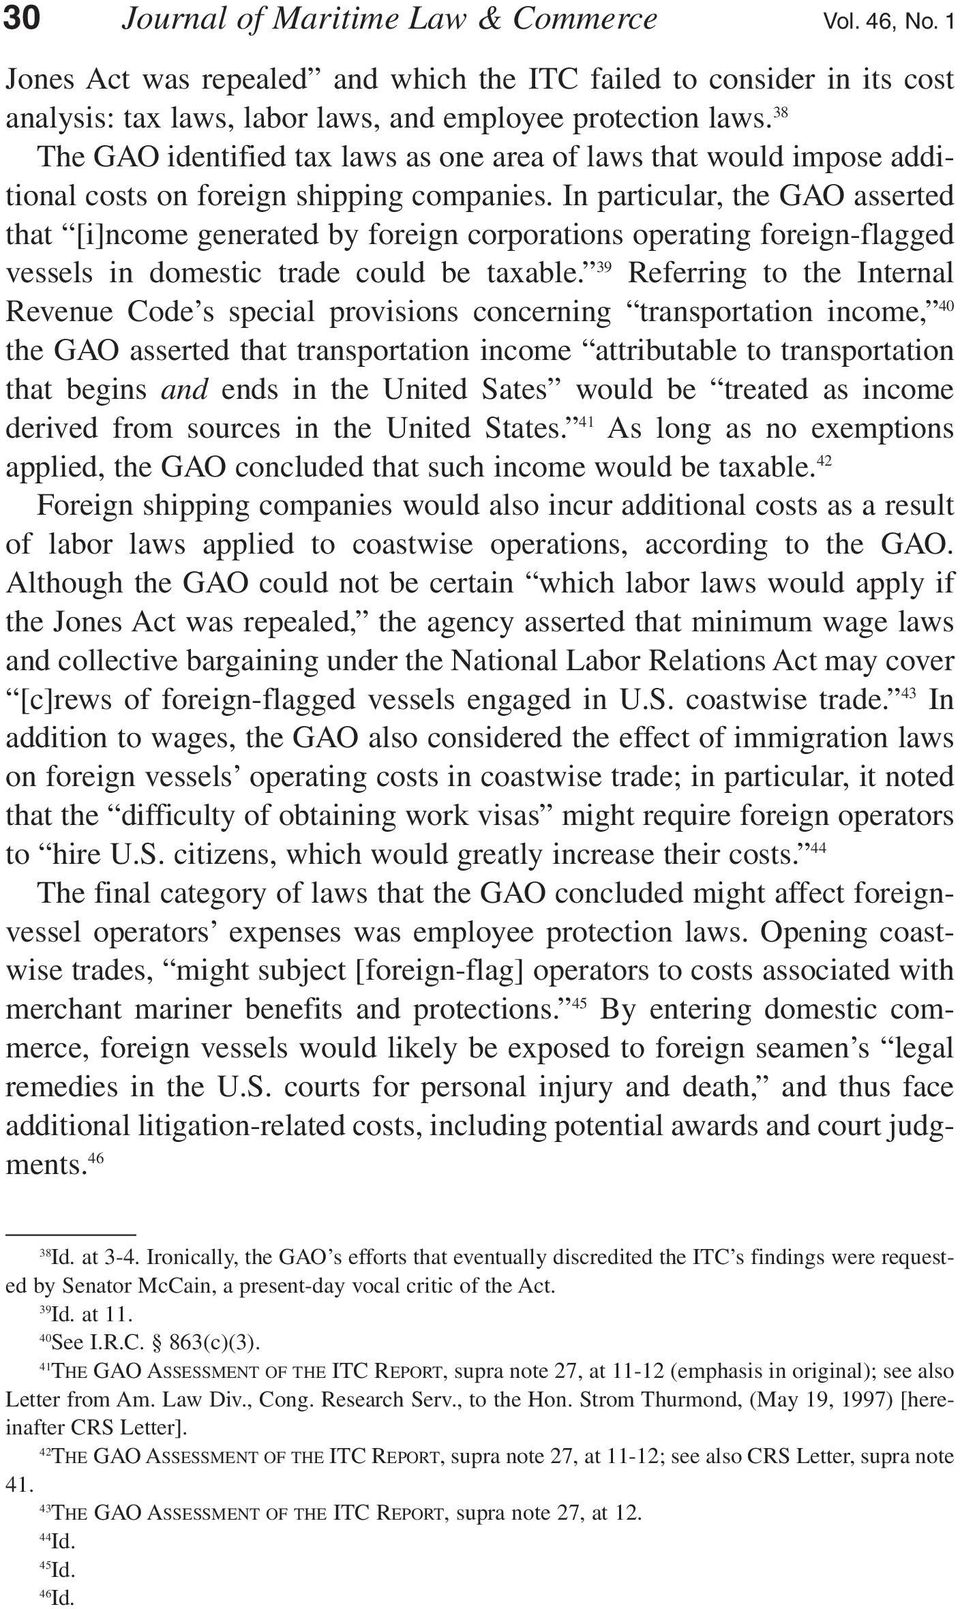 In particular, the GAO asserted that [i]ncome generated by foreign corporations operating foreign-flagged vessels in domestic trade could be taxable.